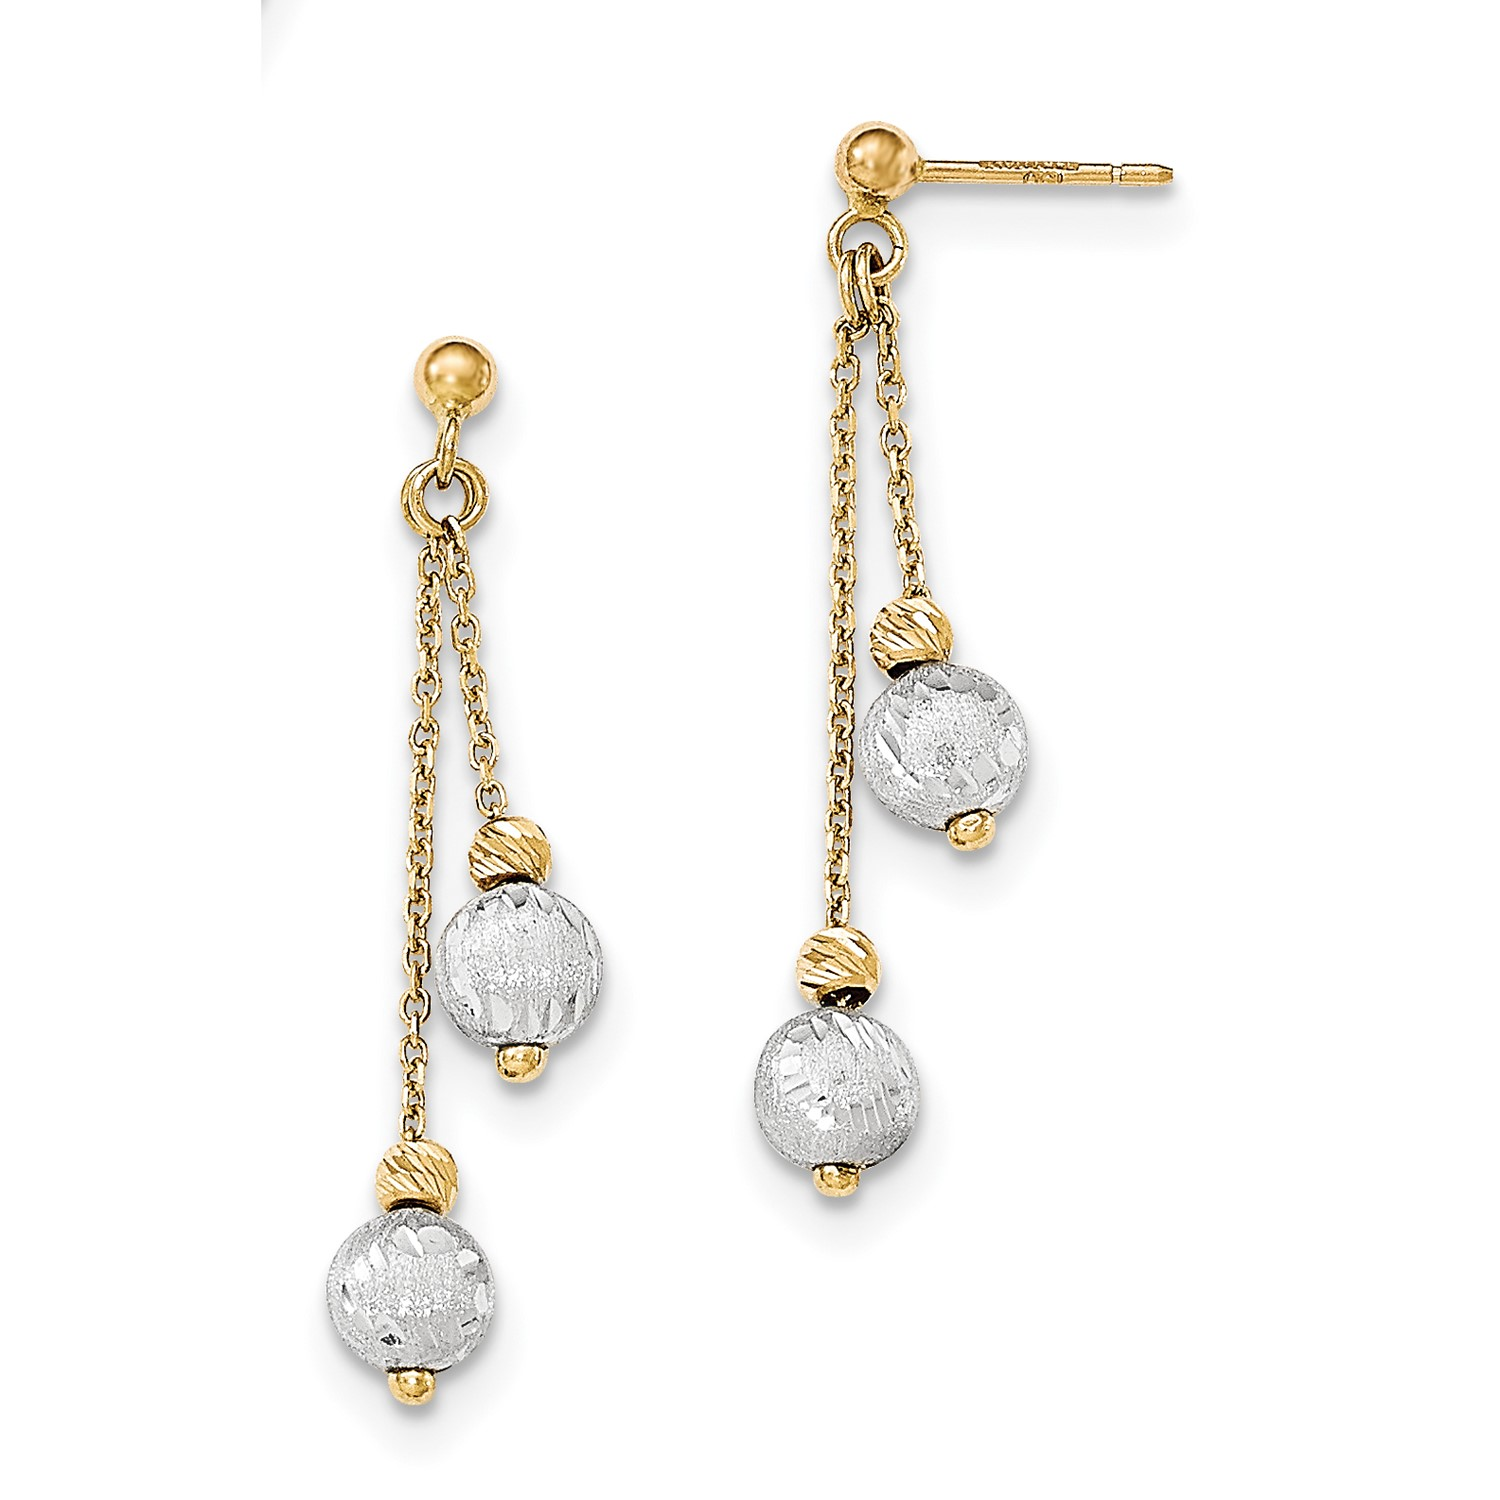 14k Two Tone gold Brushed Polished DC Beaded Dangle Earrings (1.6IN x 0.4IN)